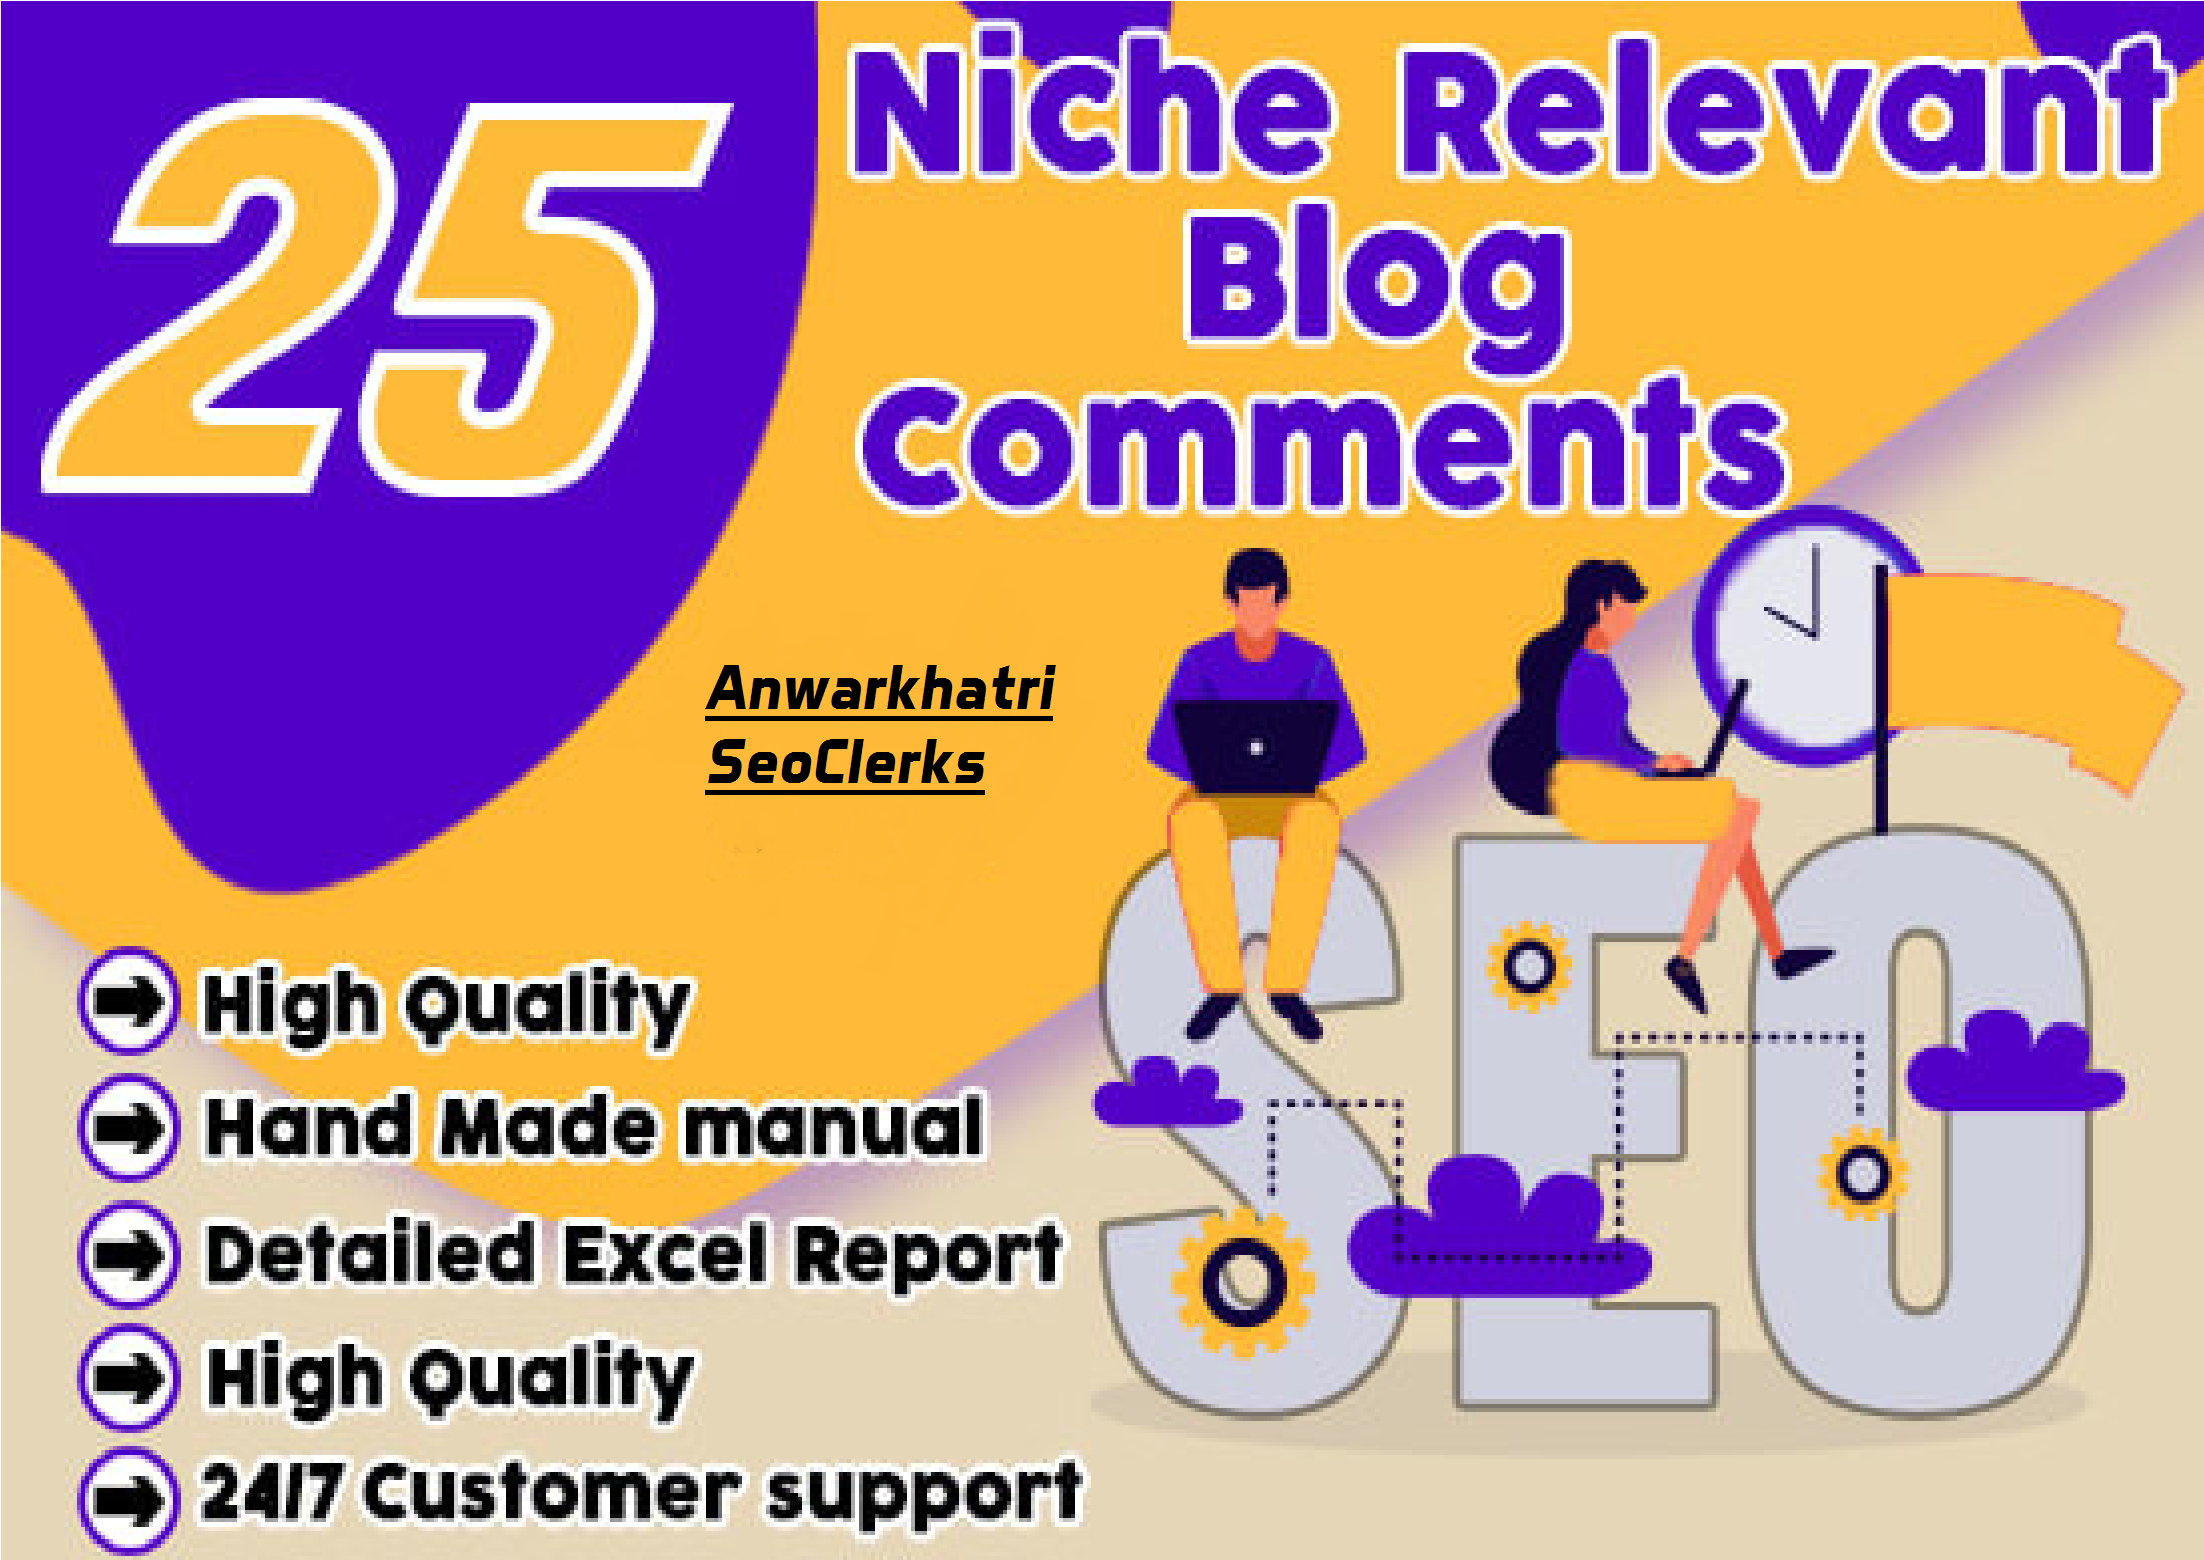 Provide 25 High Quality Niche Relevant Blog Comments